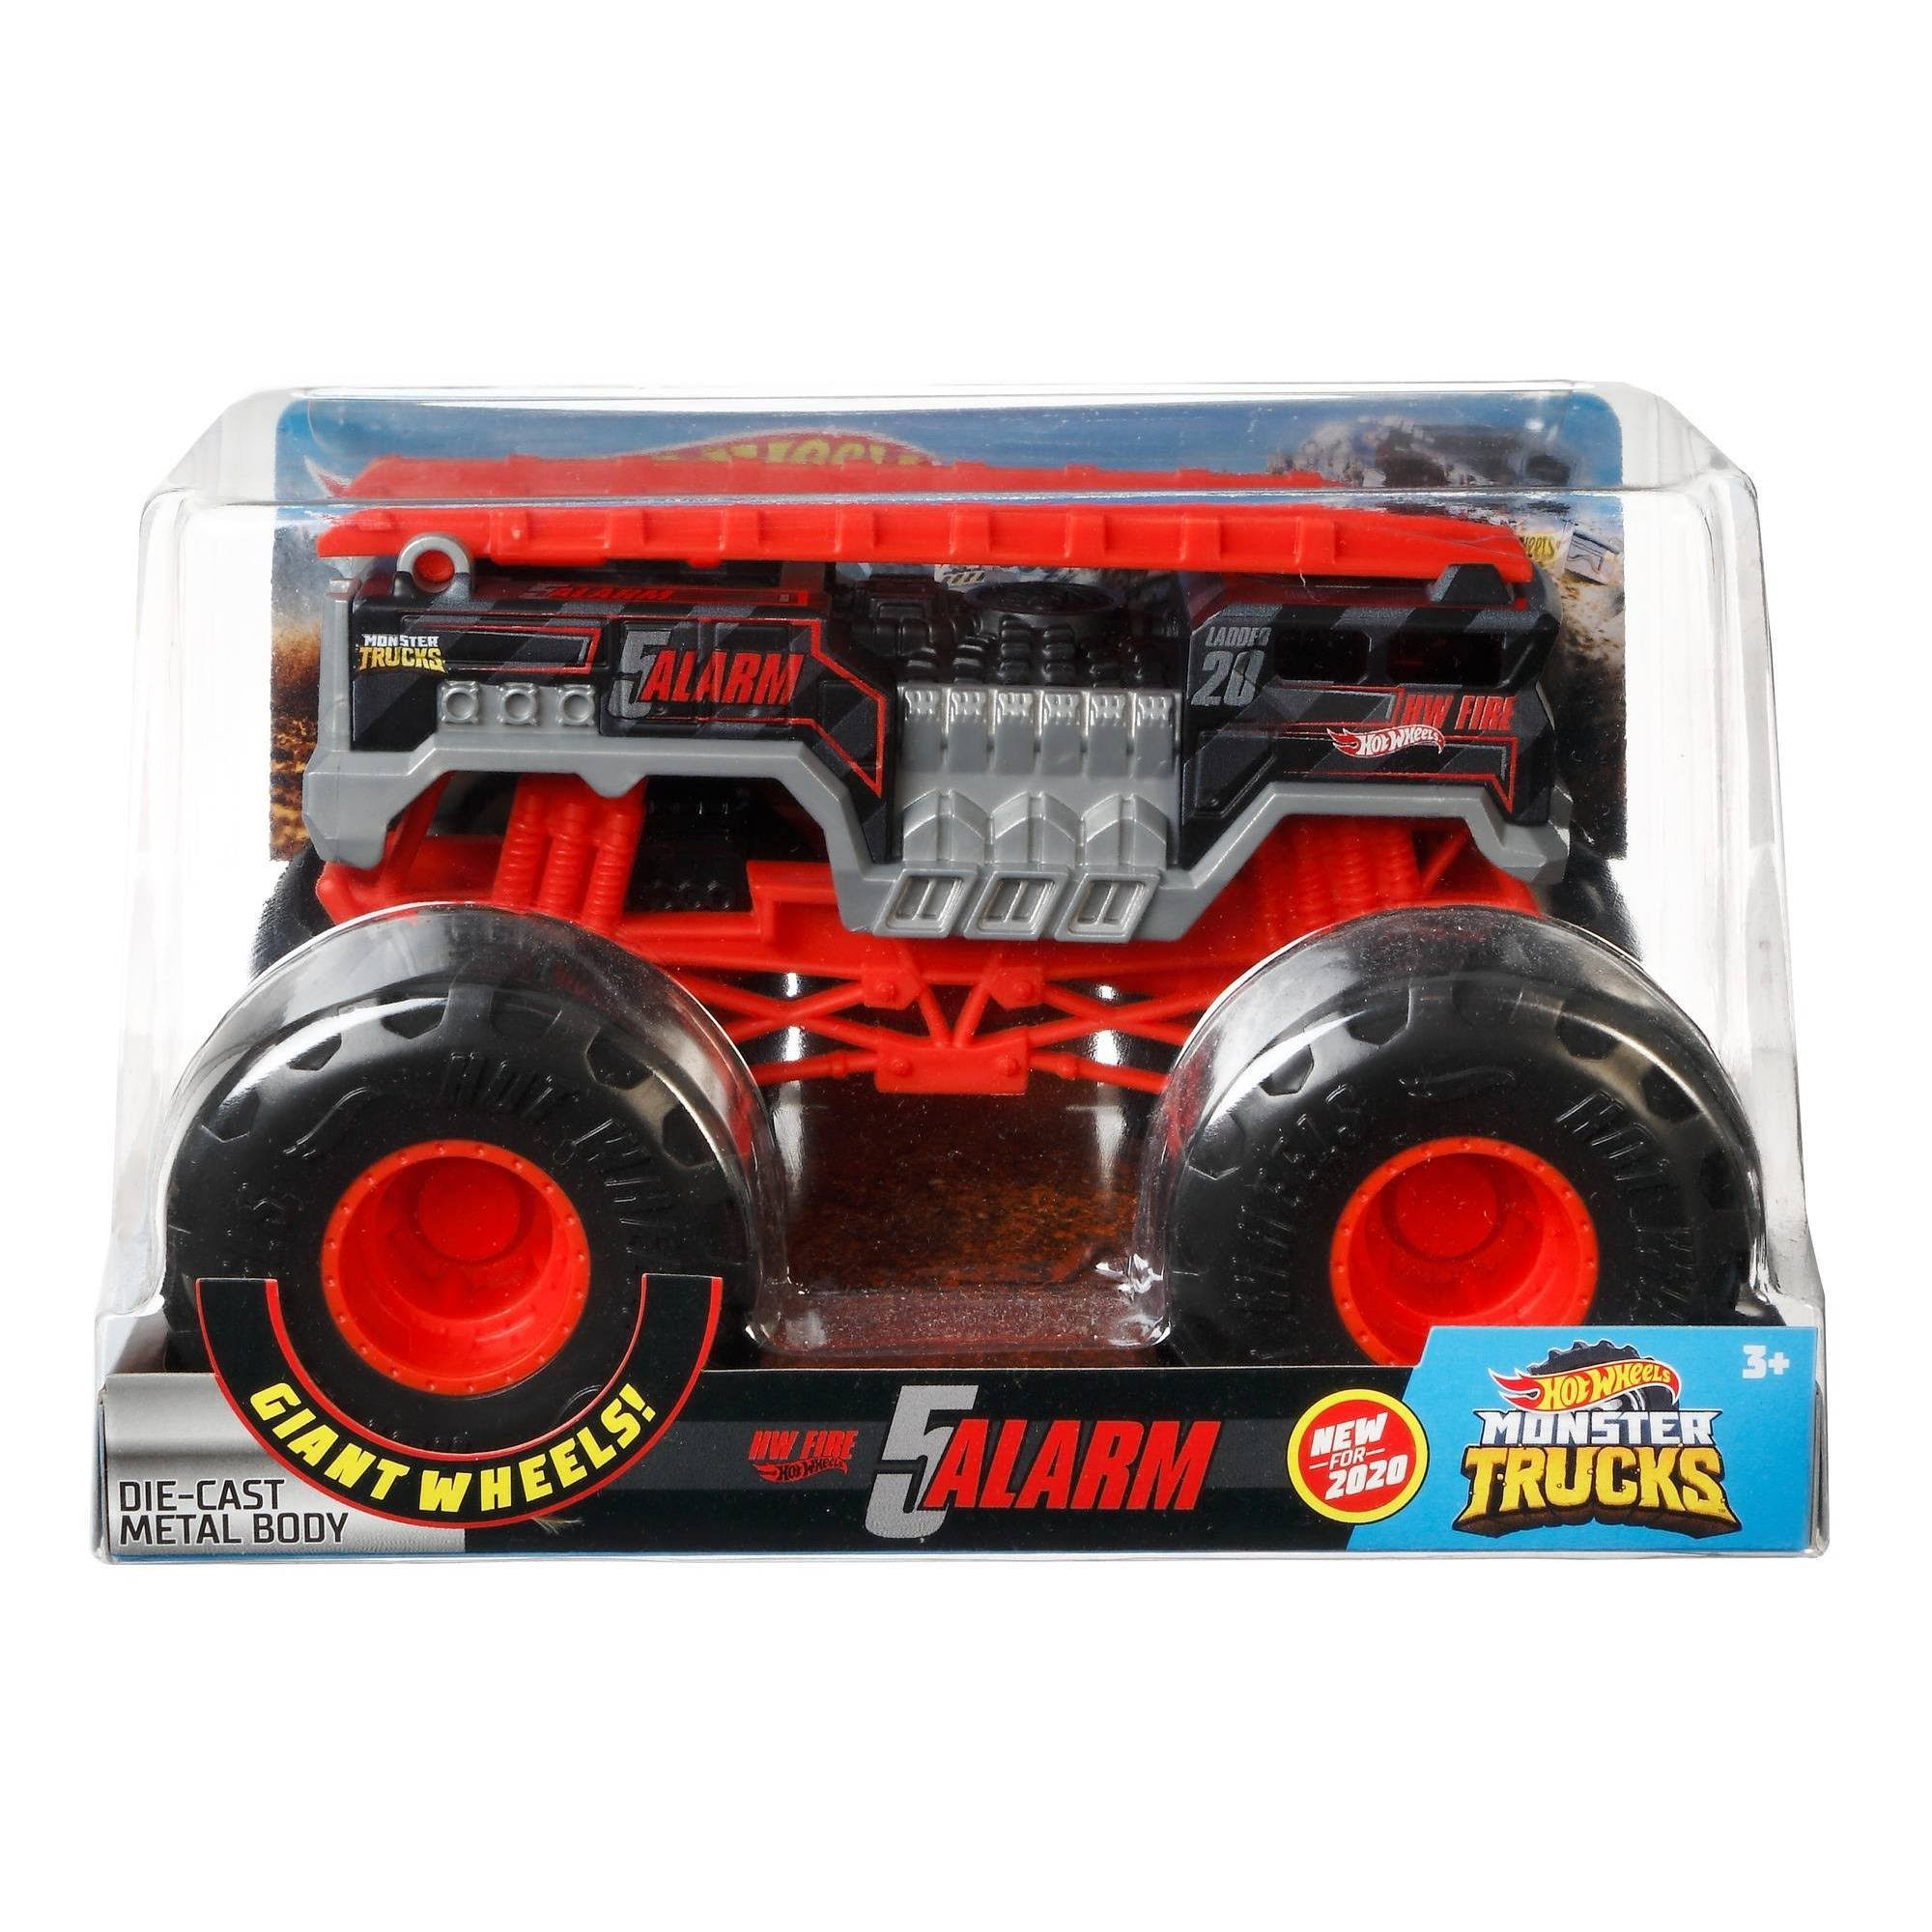 Hot Wheels 1:24 Scale Monster Truck 5 Alarm